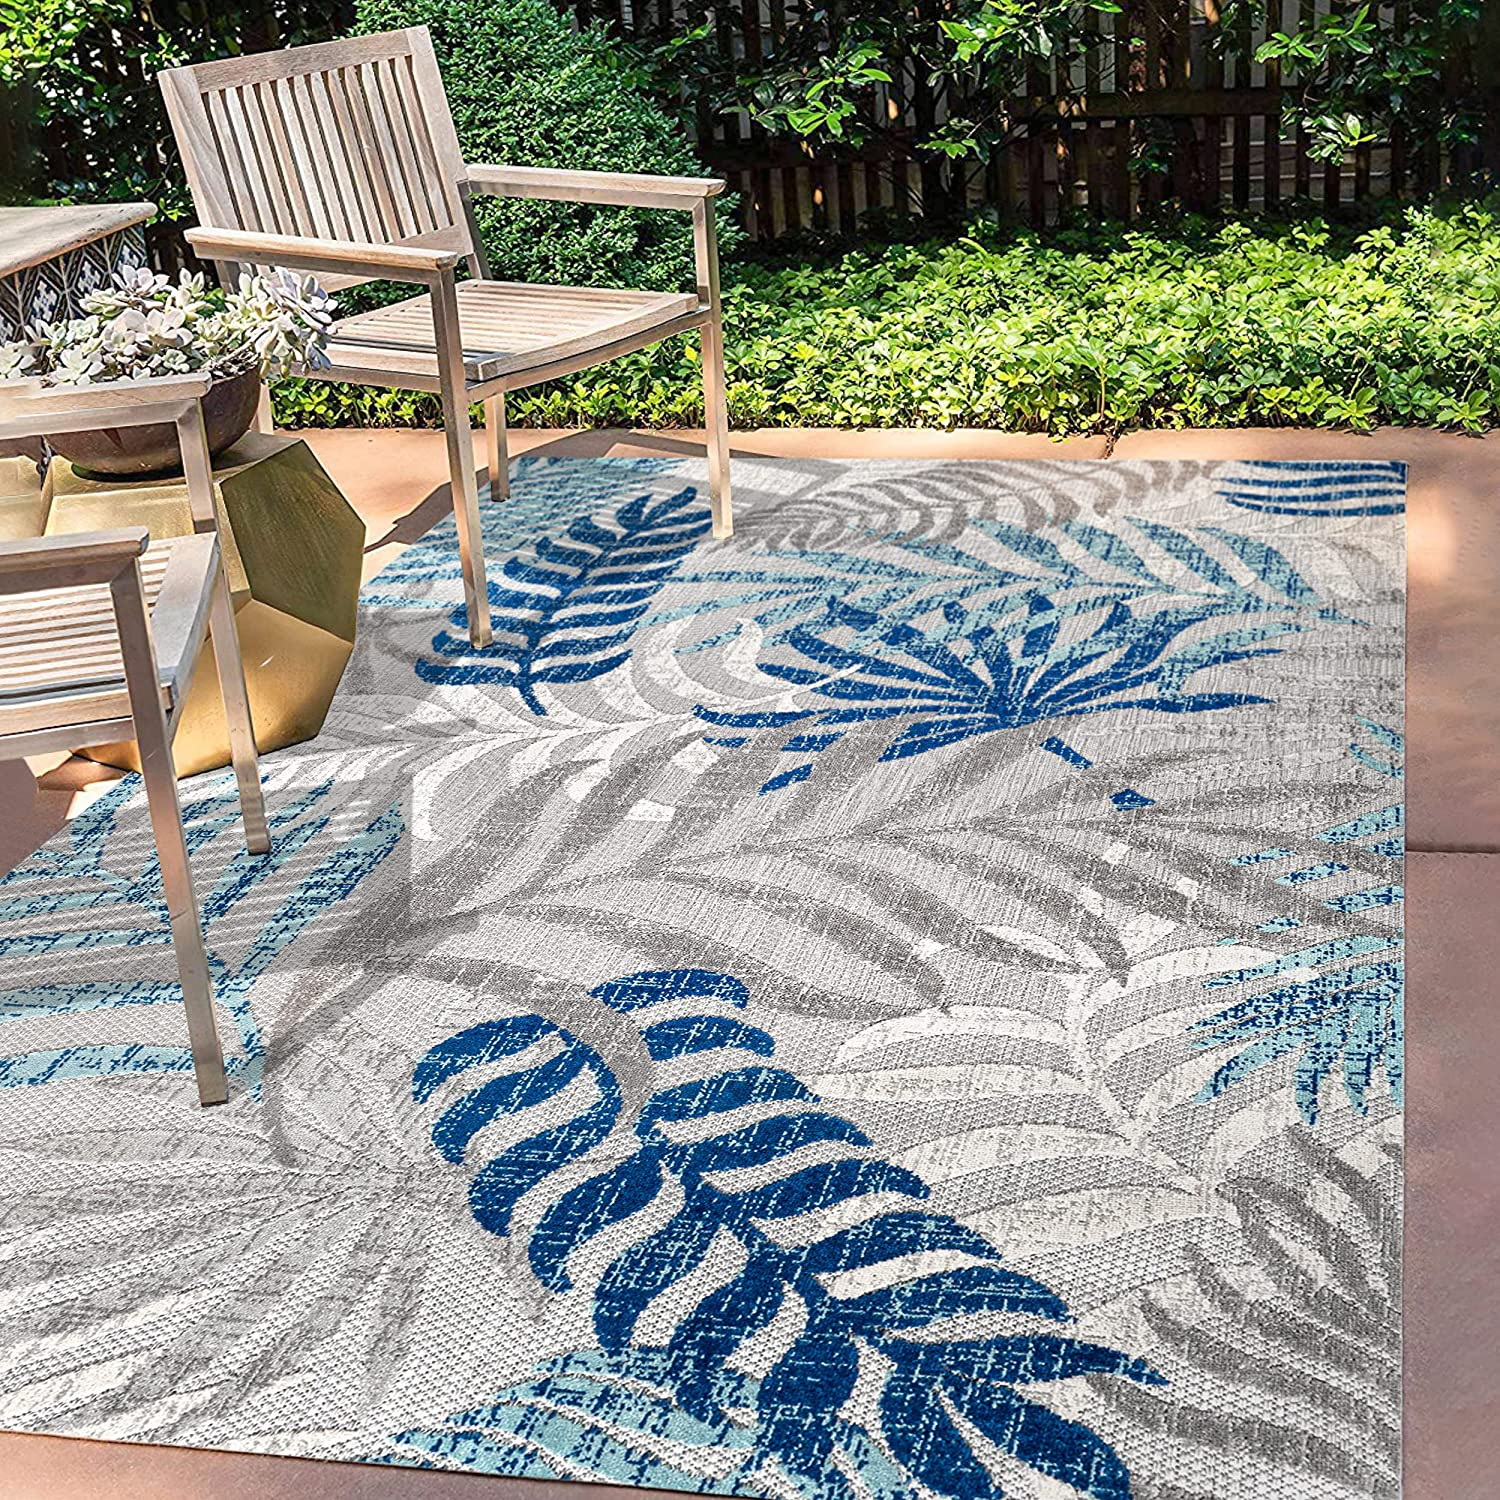 JONATHAN Max 84% OFF Y AMC100A-9 Tropics Palm Leaves Gray 2021new shipping free shipping Blu Outdoor Indoor